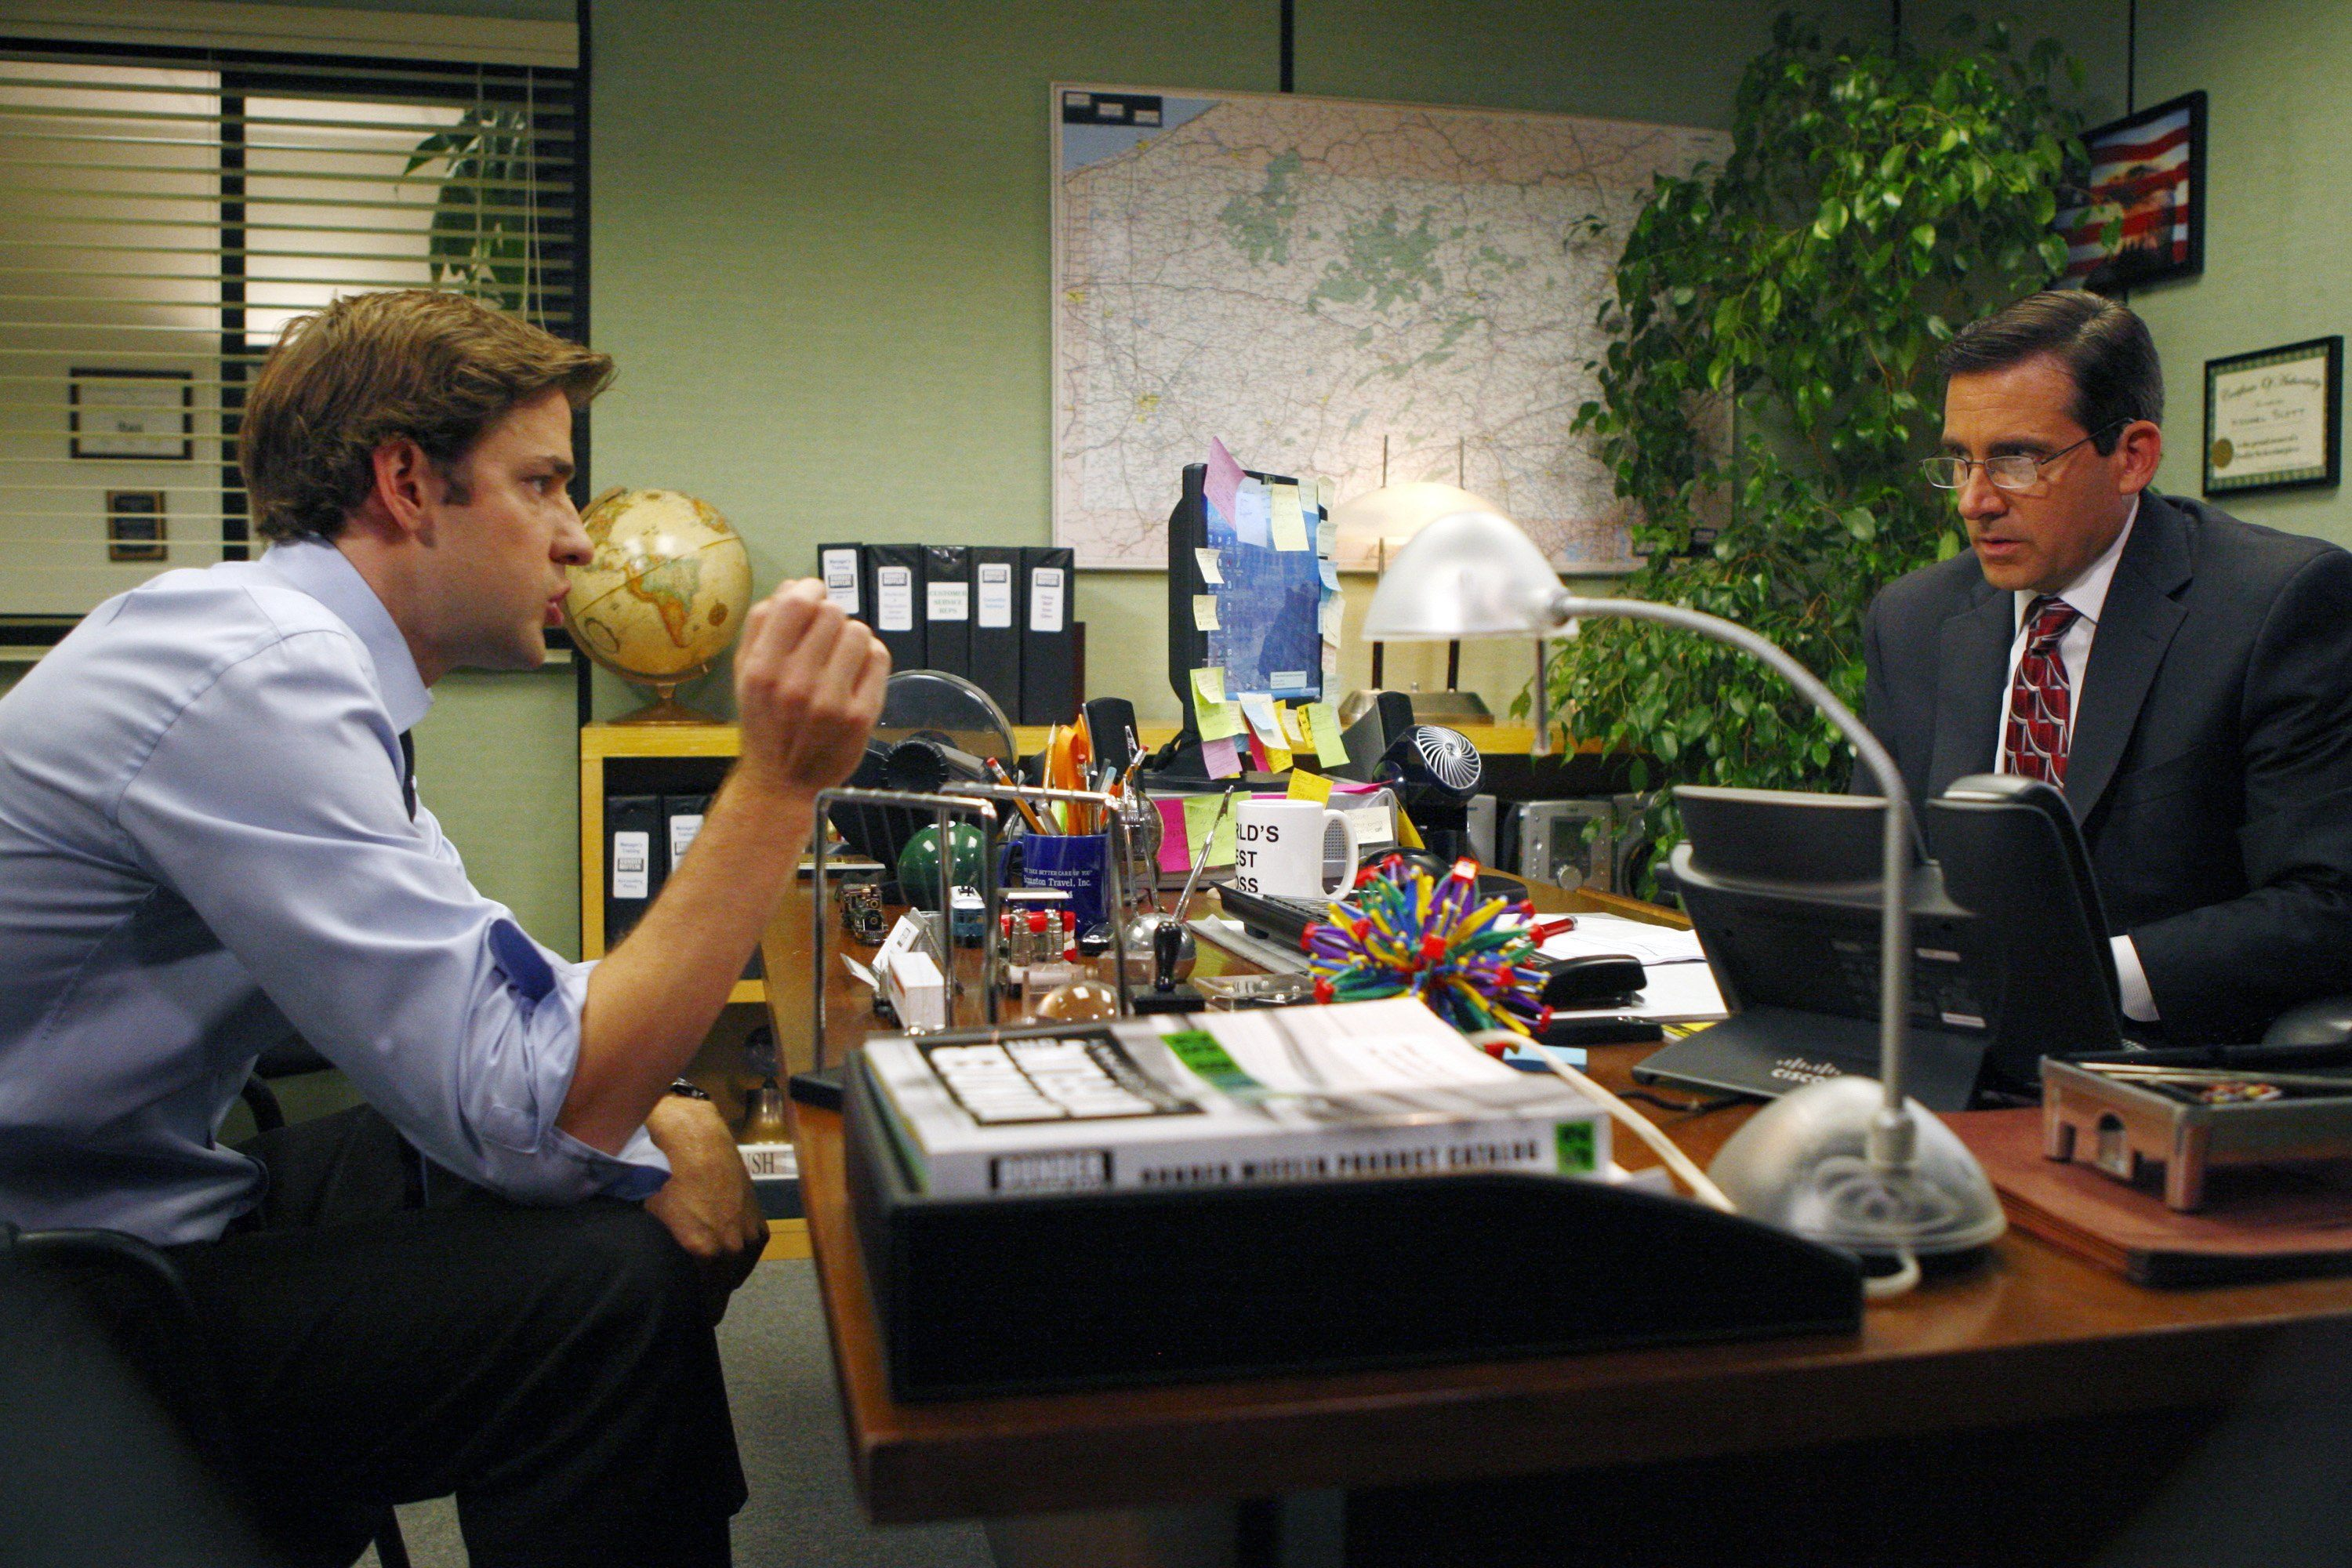 Jim and Michael at a desk on The Office